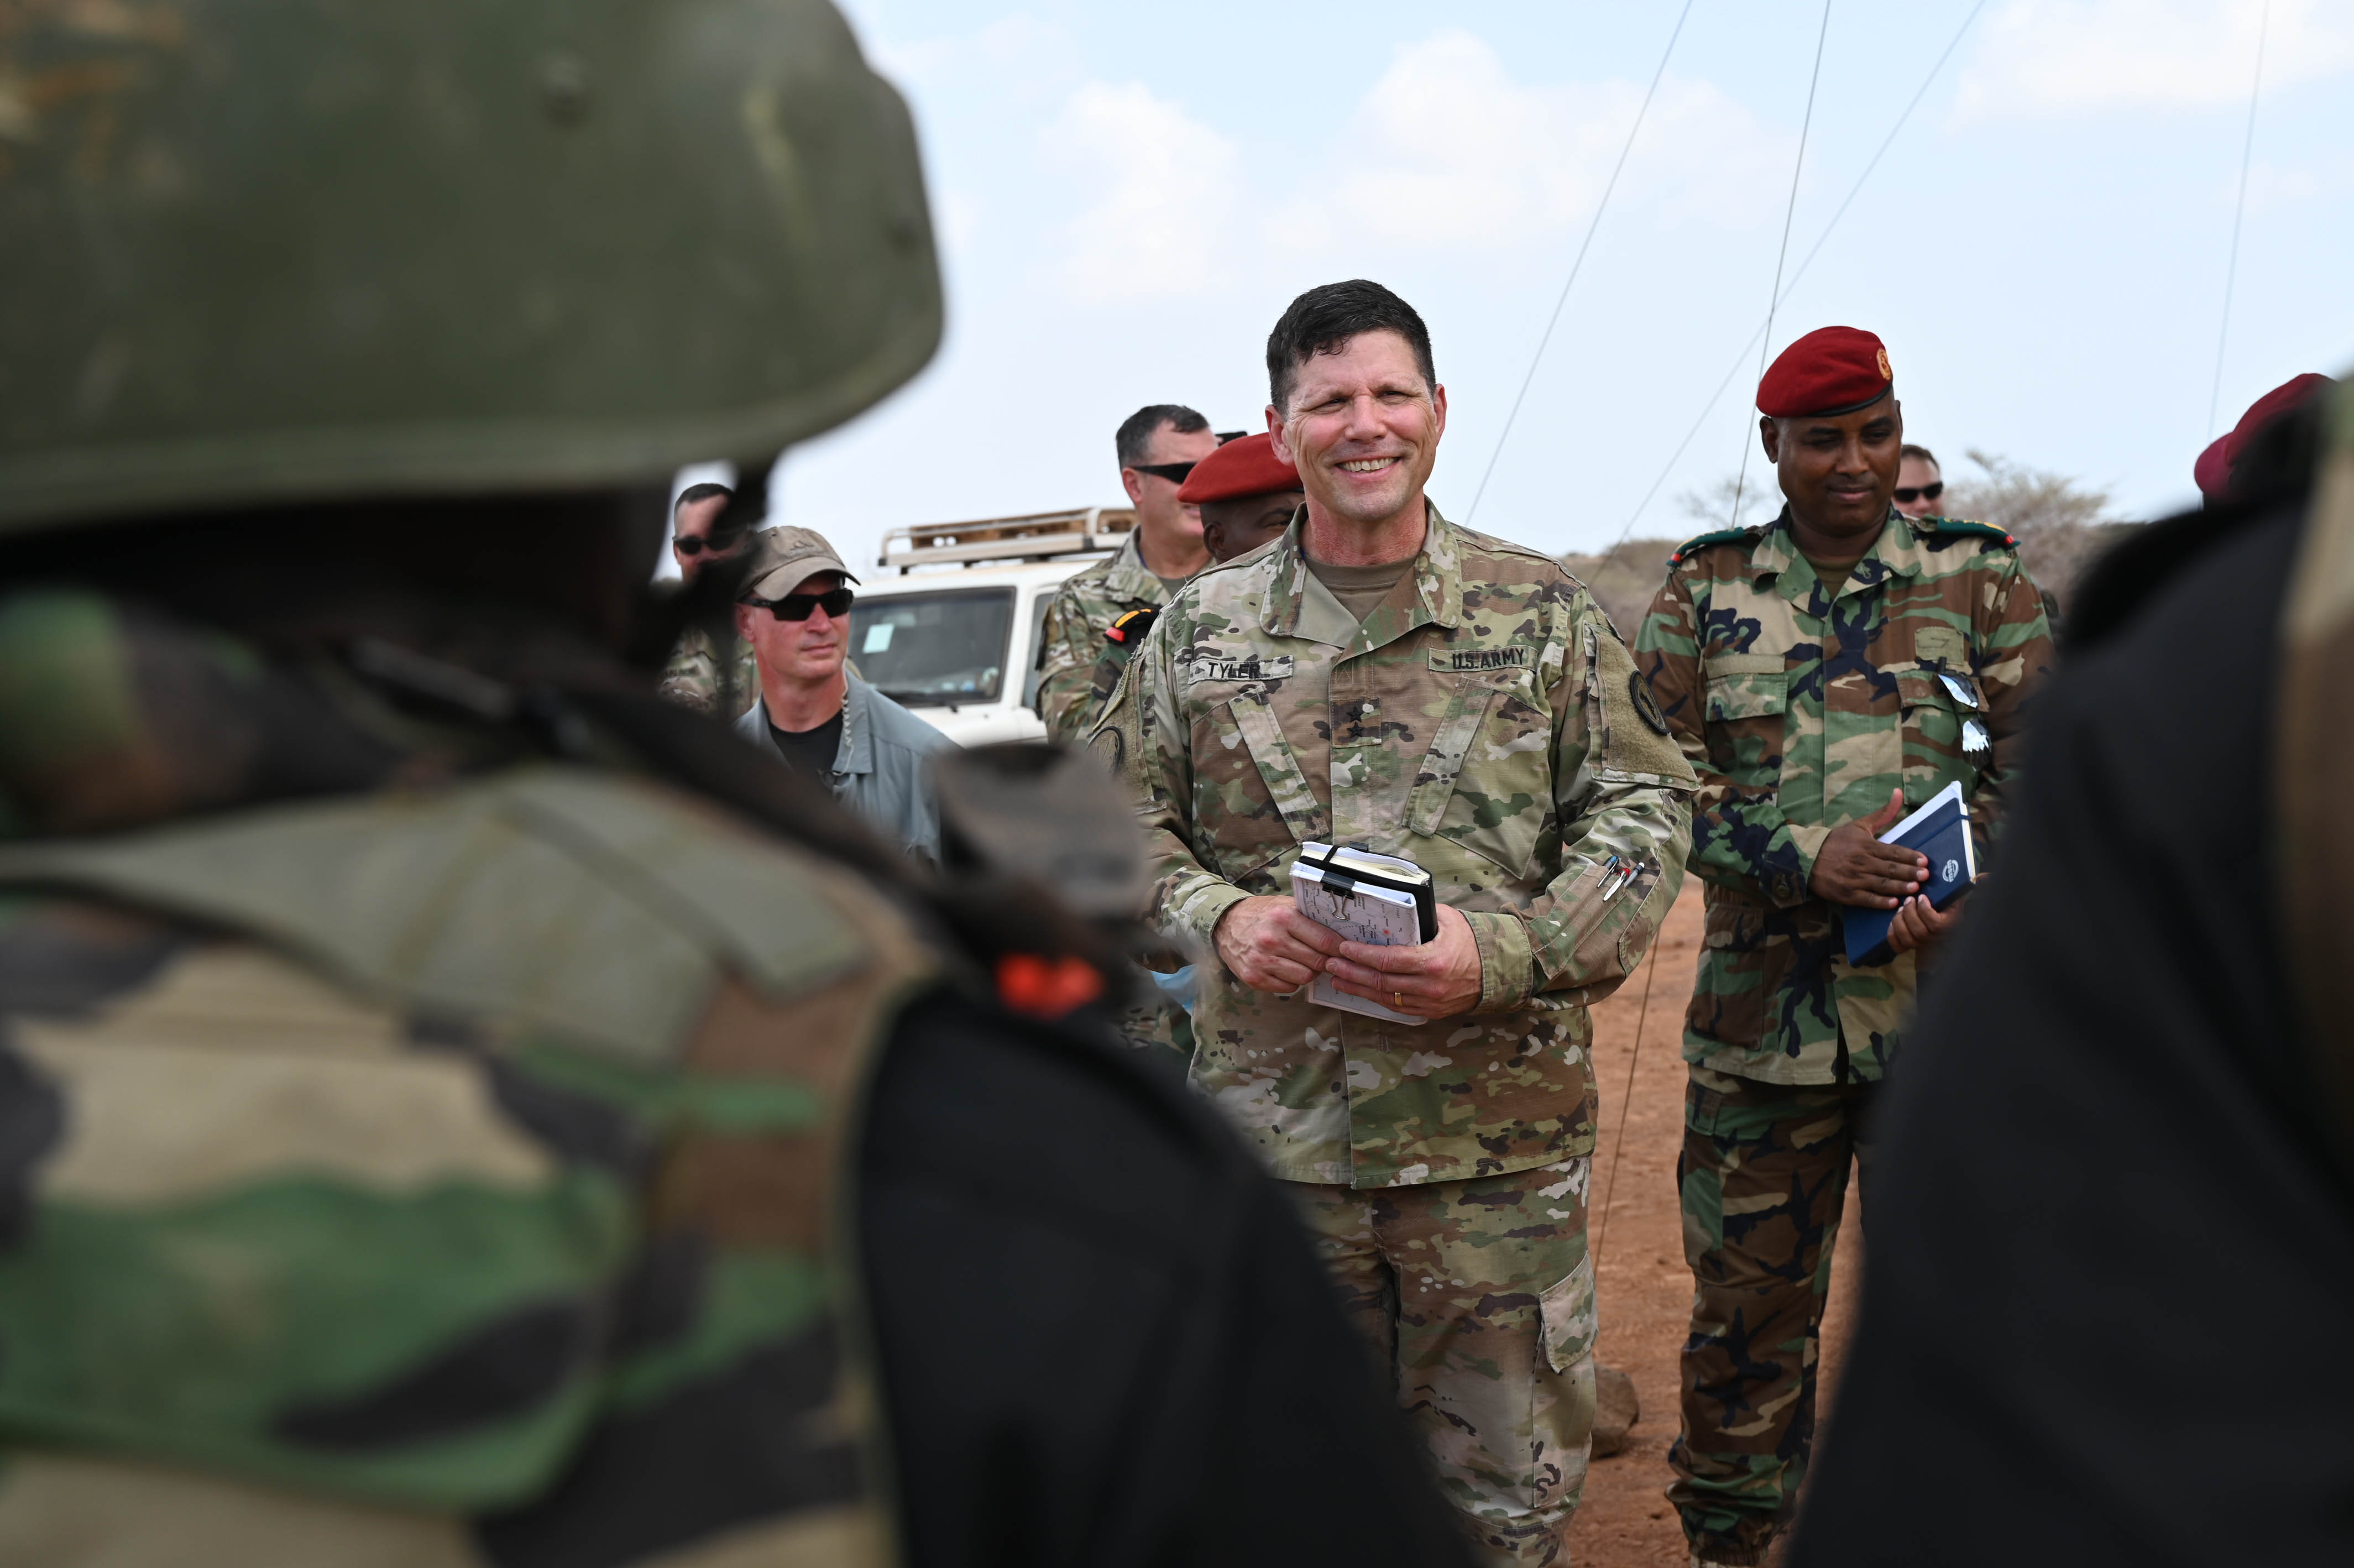 U.S. Army Major General Lapthe C. Flora, commanding general of Combined Joint Task Force - Horn of Africa (CJTF-HOA), chats with U.S. Ambassador to Somalia Donald Y. Yamamoto, and Acting Prime Minister of Somalia Mahdi Mohamed Guled, during reception following a change of command ceremony for the European Union Training Mission - Somalia (EUTM-S) in Mogadishu, Somalia, Aug. 9, 2020. (U.S. Air Force photo by Senior Airman Kristen A. Heller)